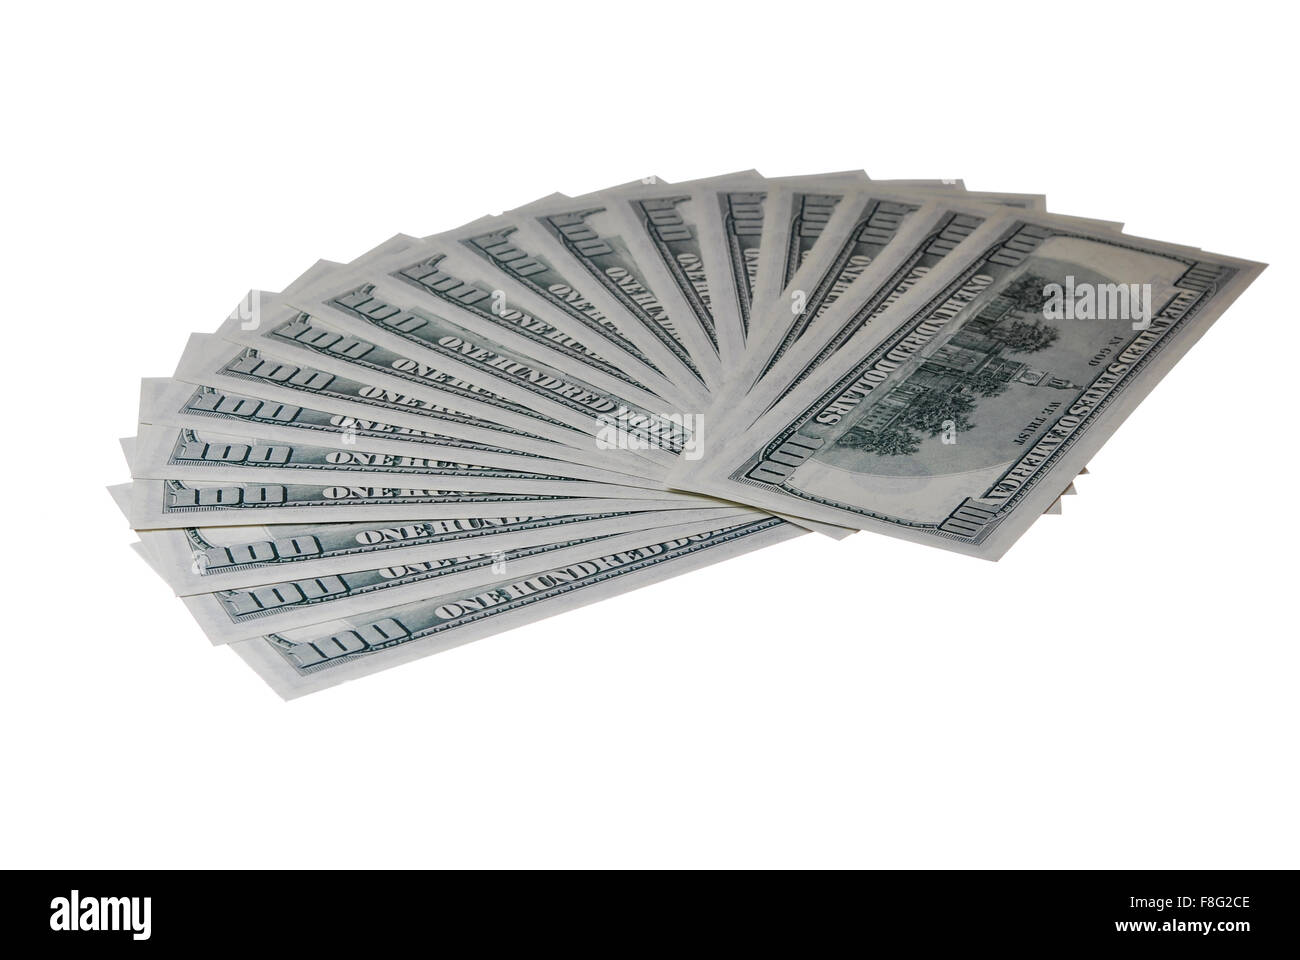 Hundred dollar bill folded like a fan on a white background - Stock Image